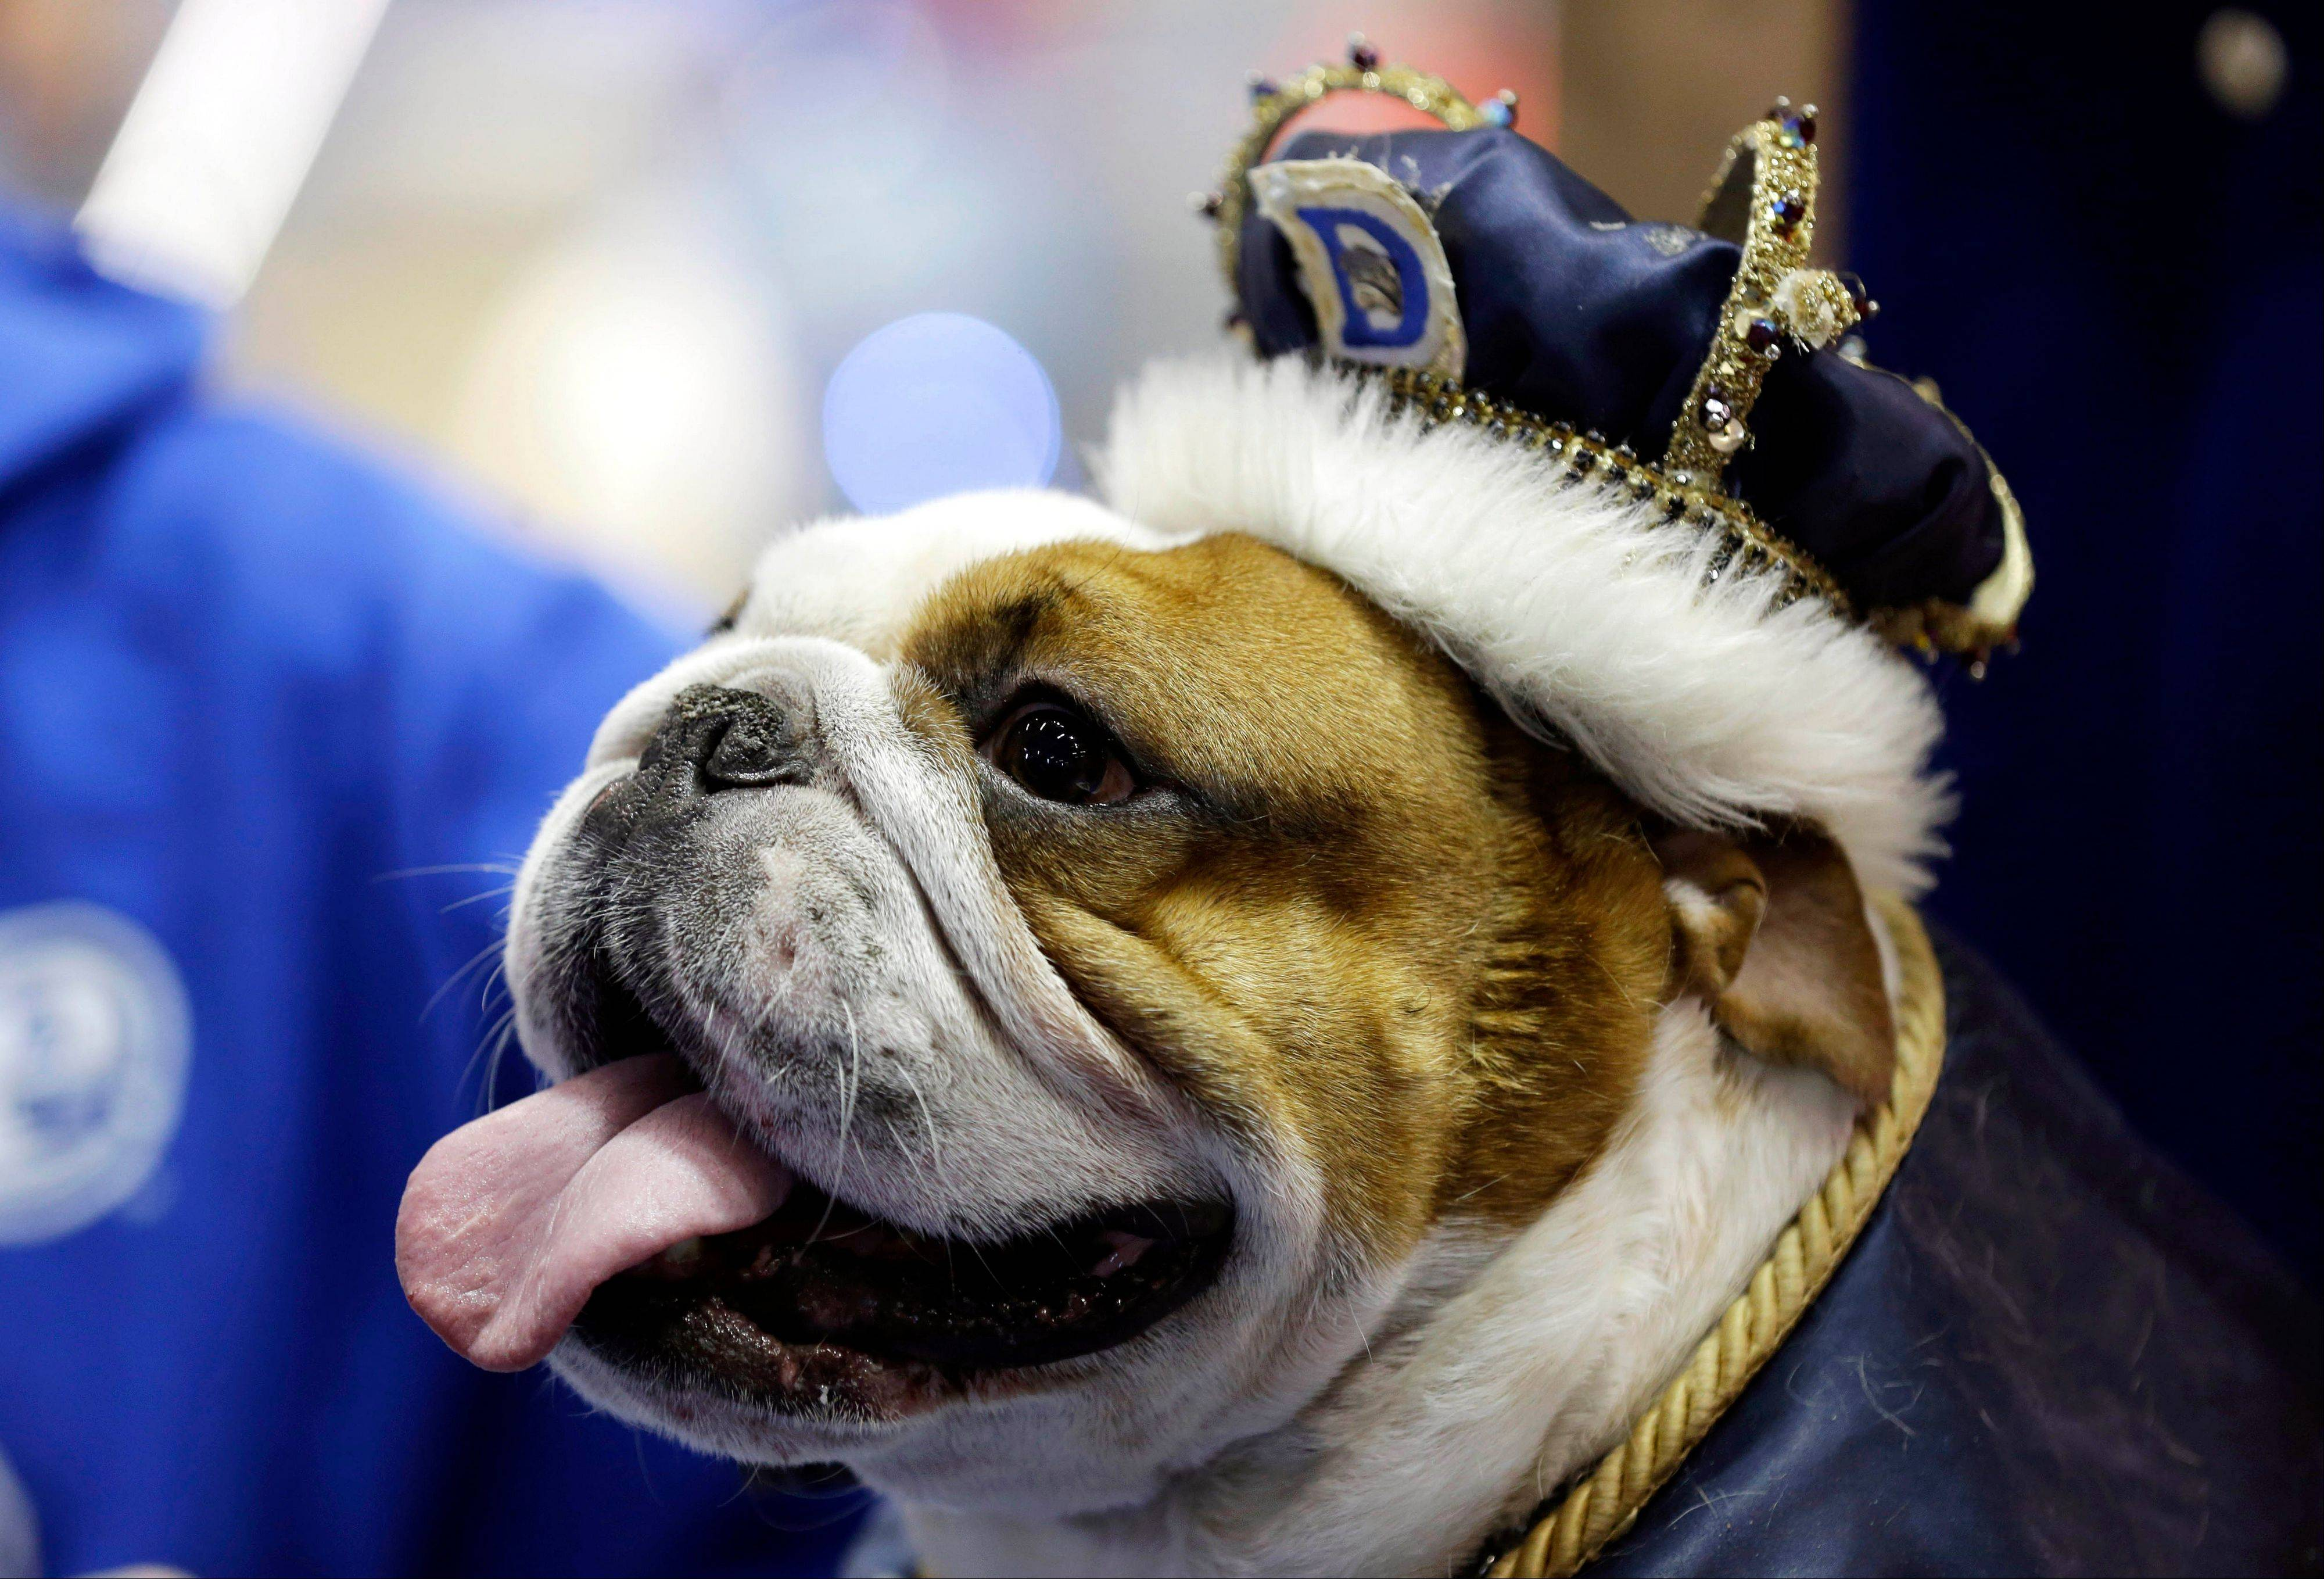 Huckleberry sits on the throne after being crowned the winner of the 34th annual Drake Relays Beautiful Bulldog Contest, Monday, April 22, 2013, in Des Moines, Iowa. The 4-year-old bulldog pup is owned by Steven and Stephanie Hein of Norwalk, Iowa. The pageant kicks off the Drake Relays festivities at Drake University where a bulldog is the mascot.